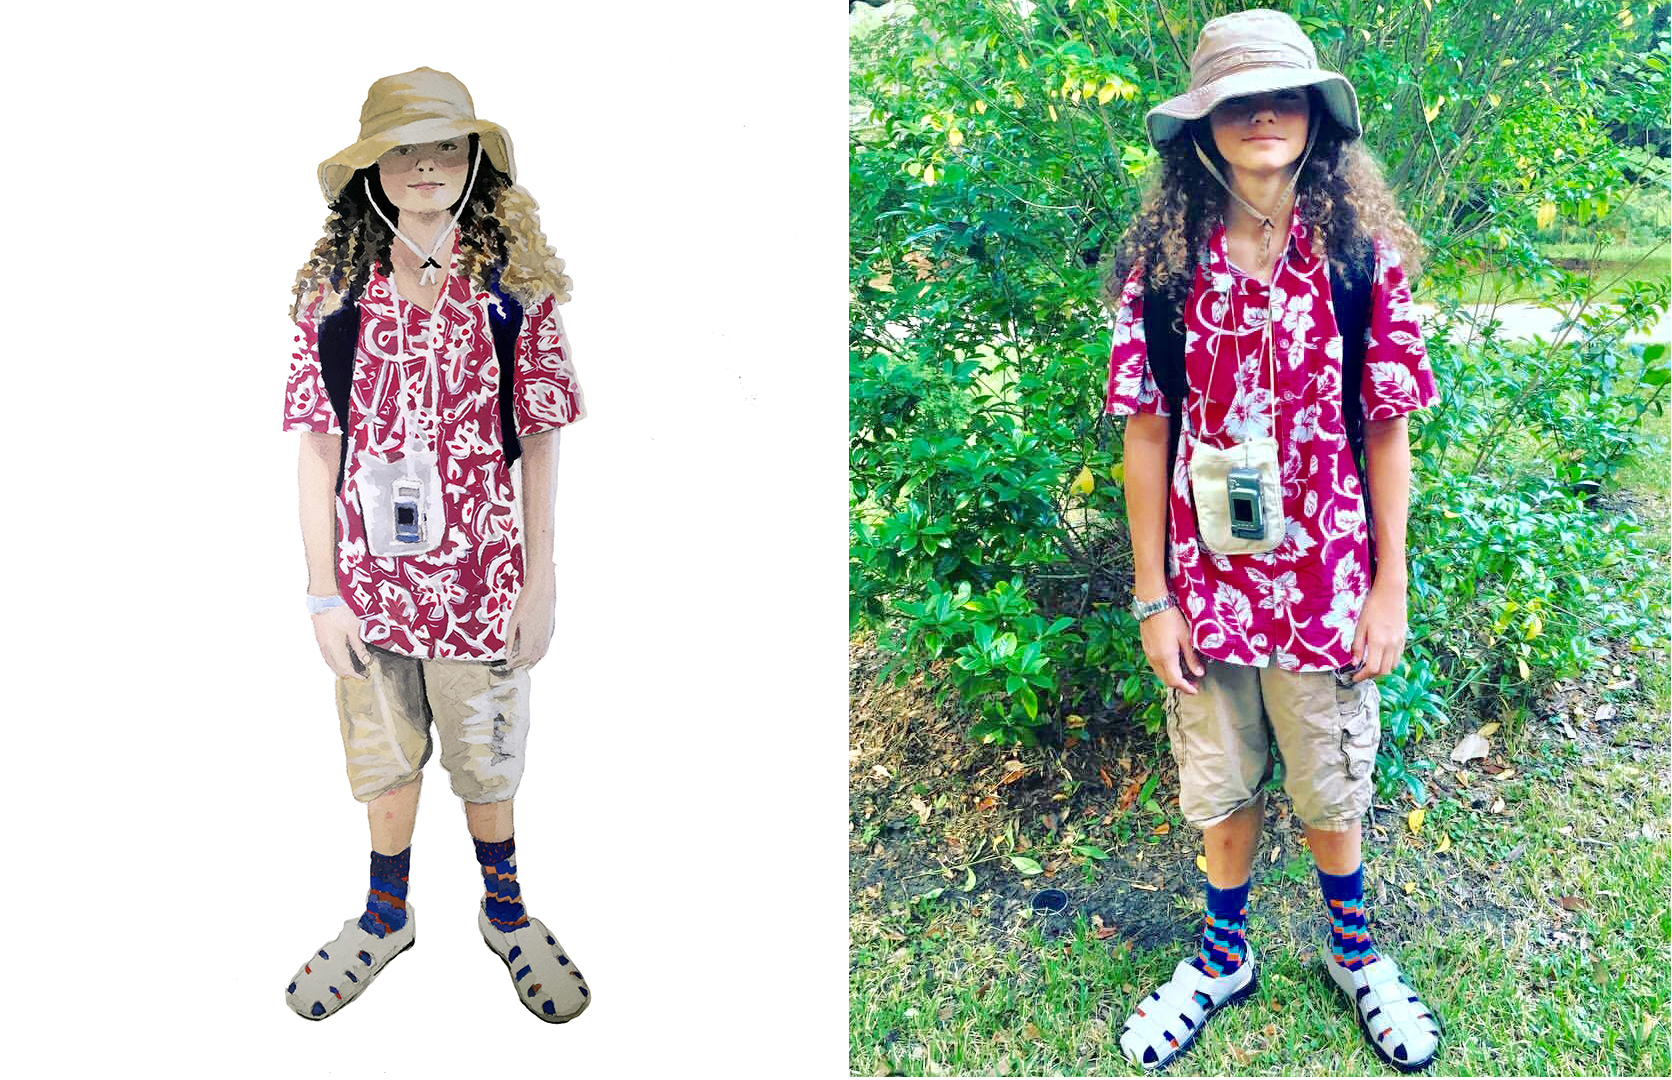 Tacky Tourist Day, Watercolor portrait and original photo .